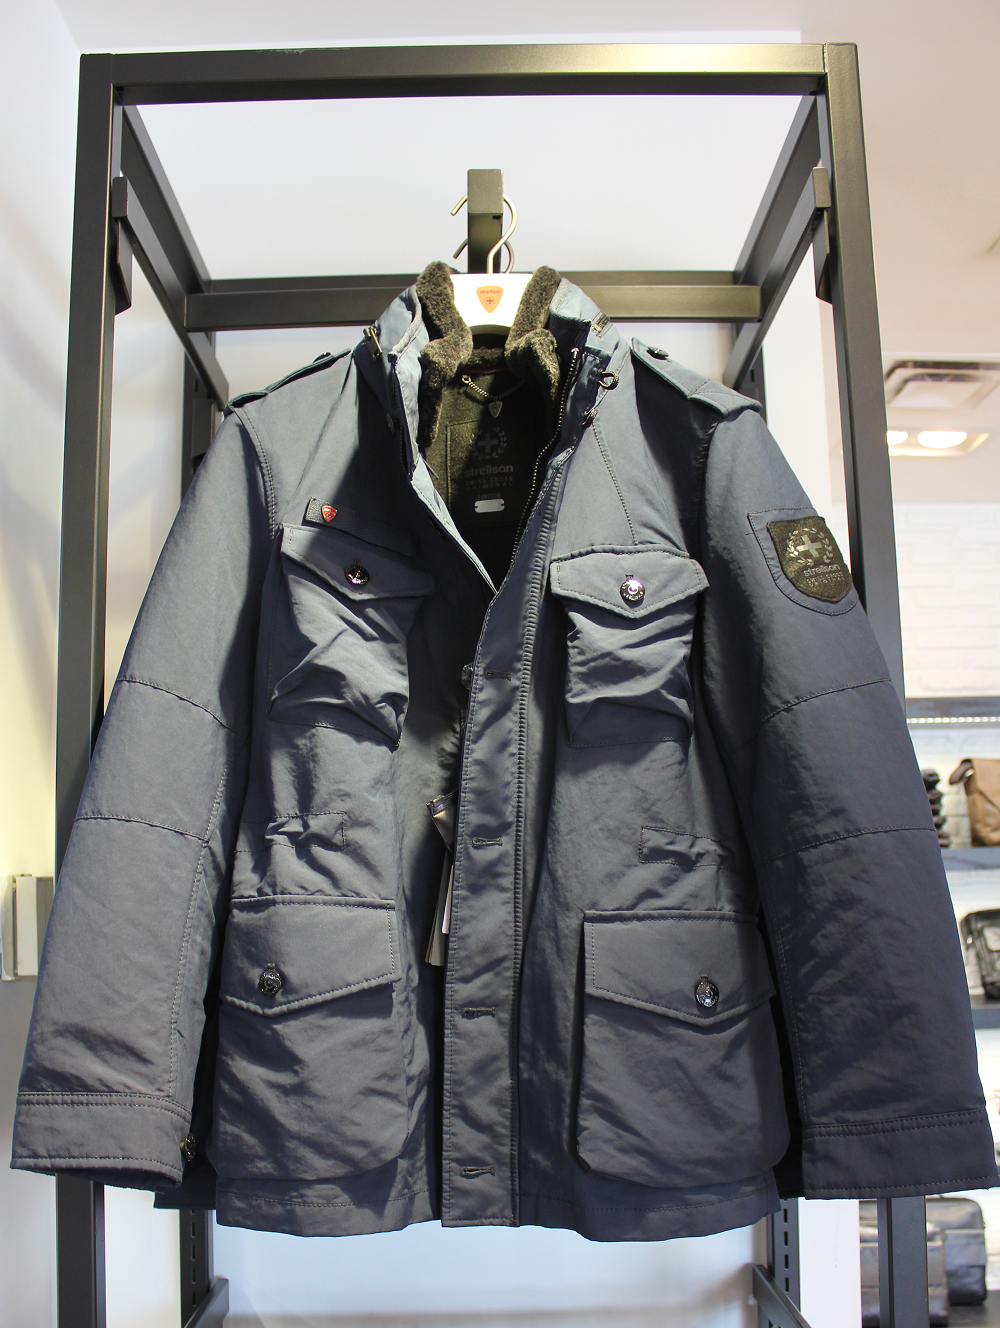 How about our Strellson Swiss Cross Squad jacket that ...